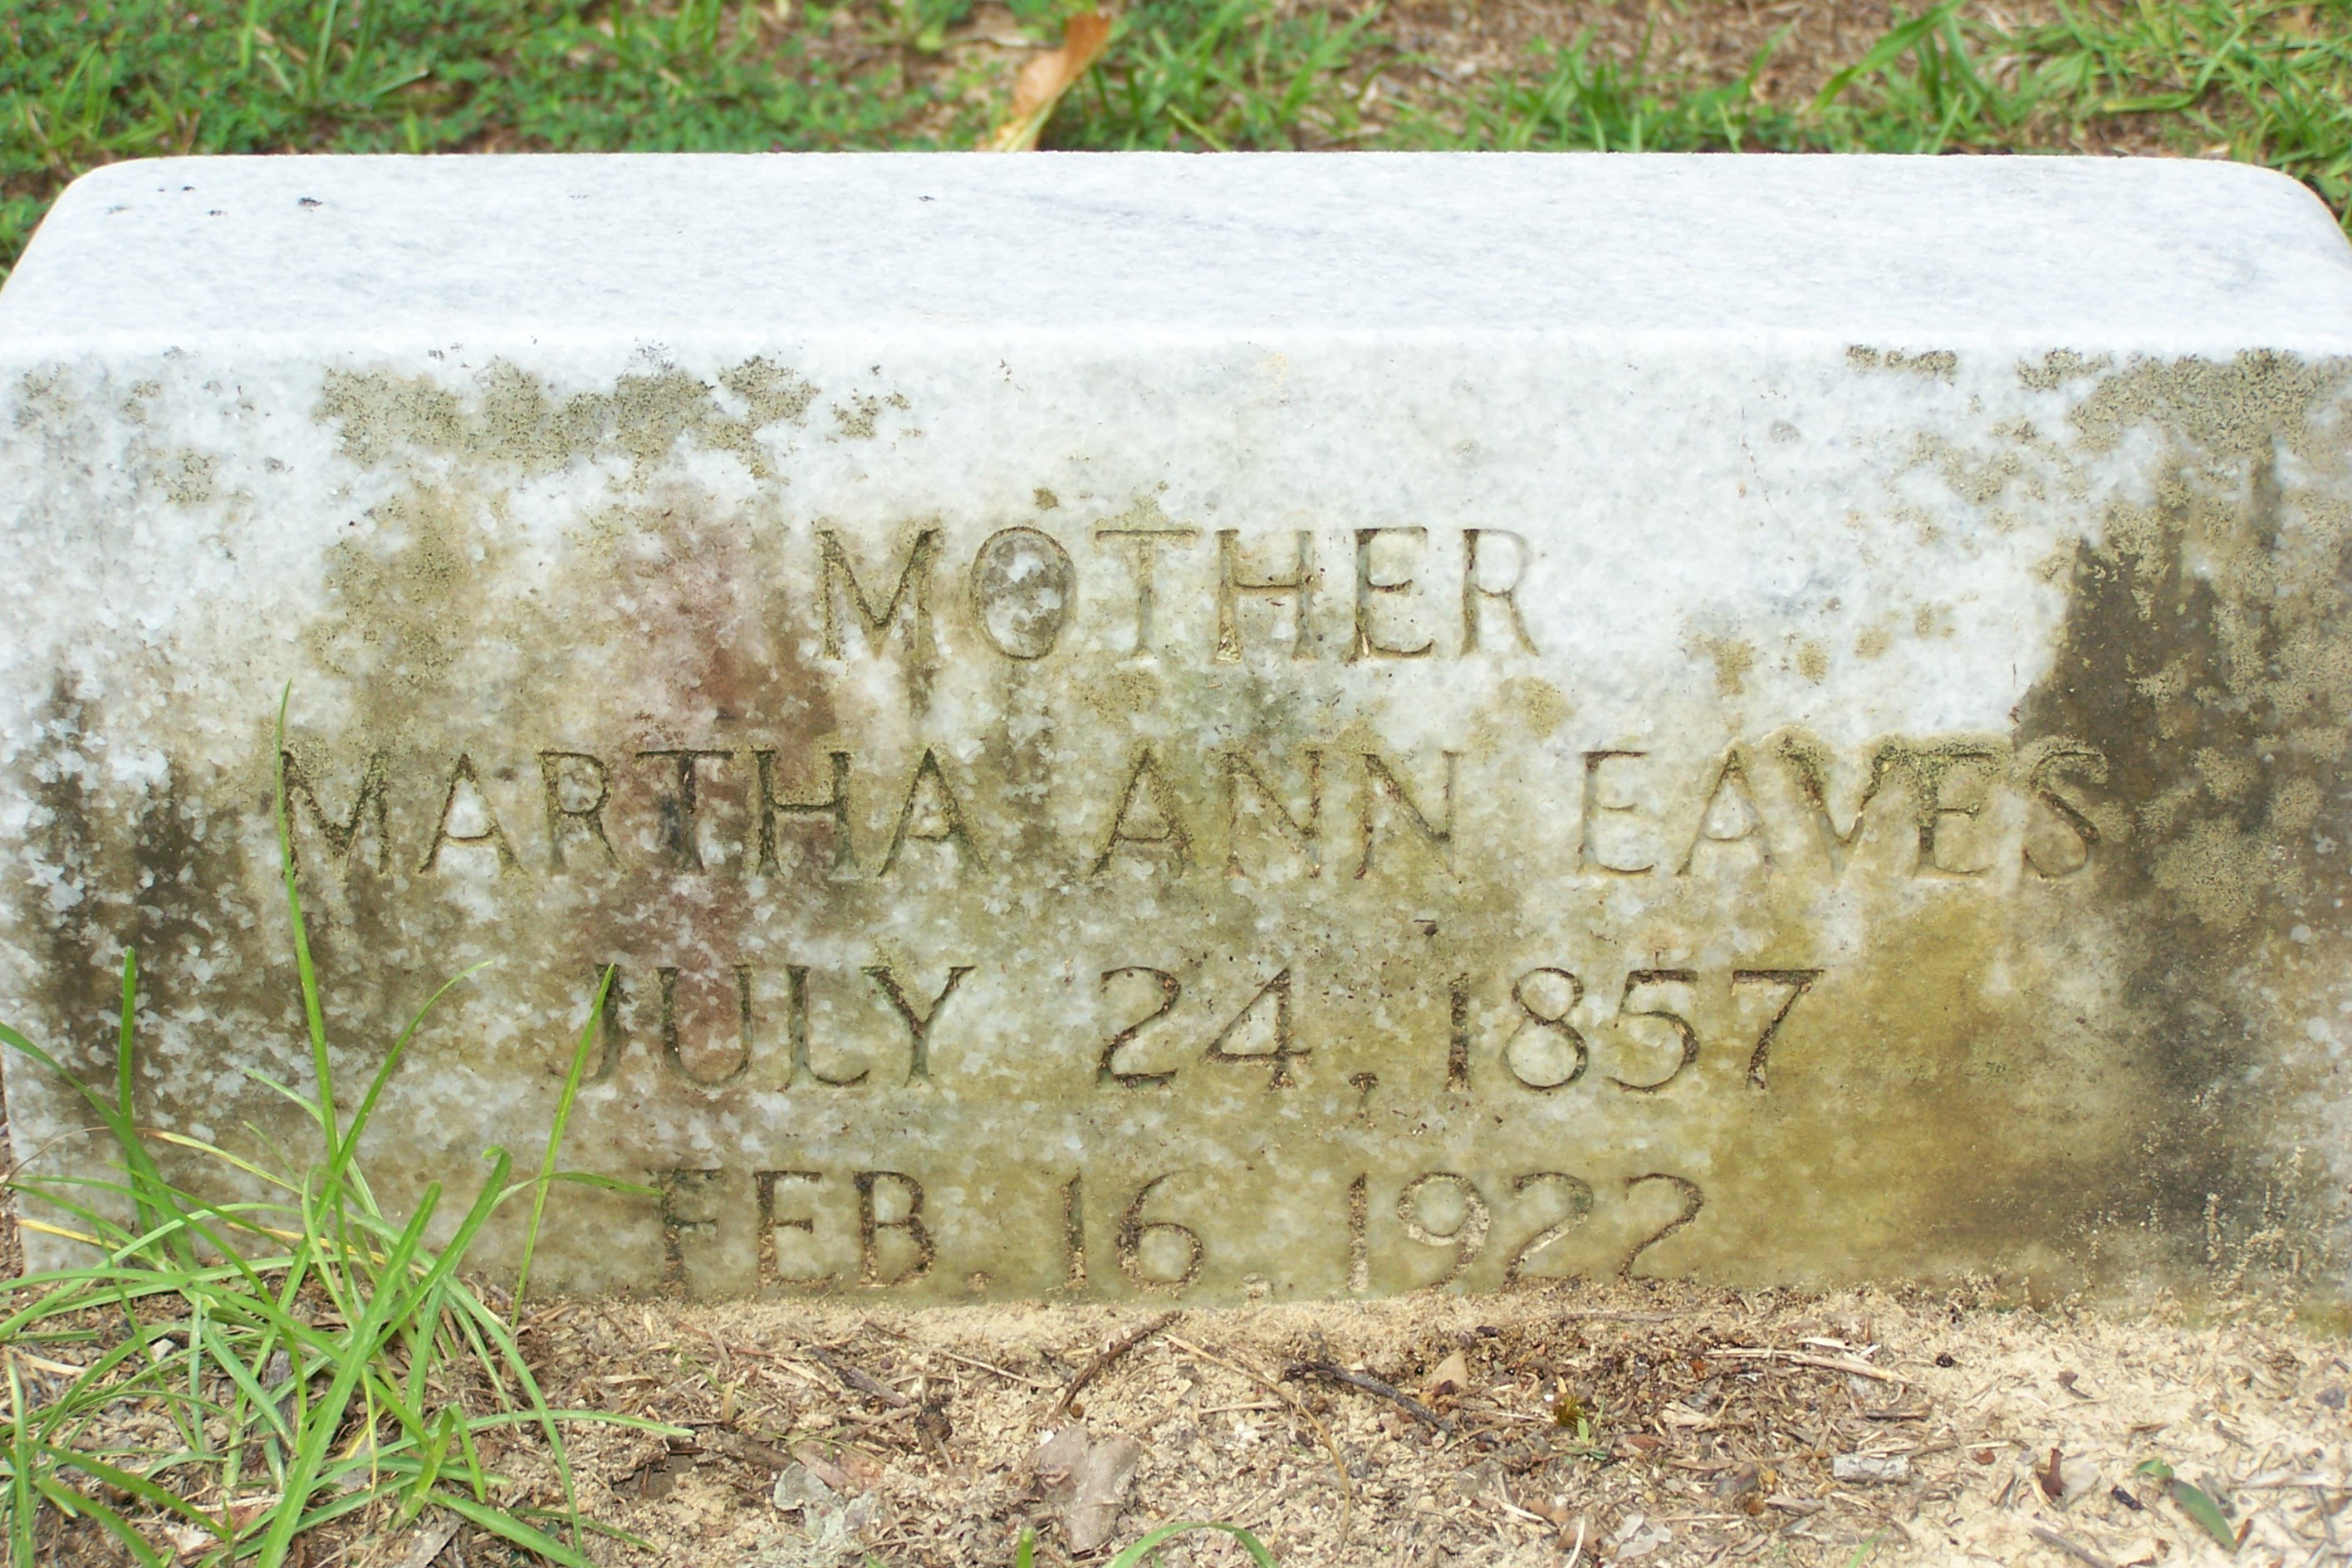 Mary Ann Eaves